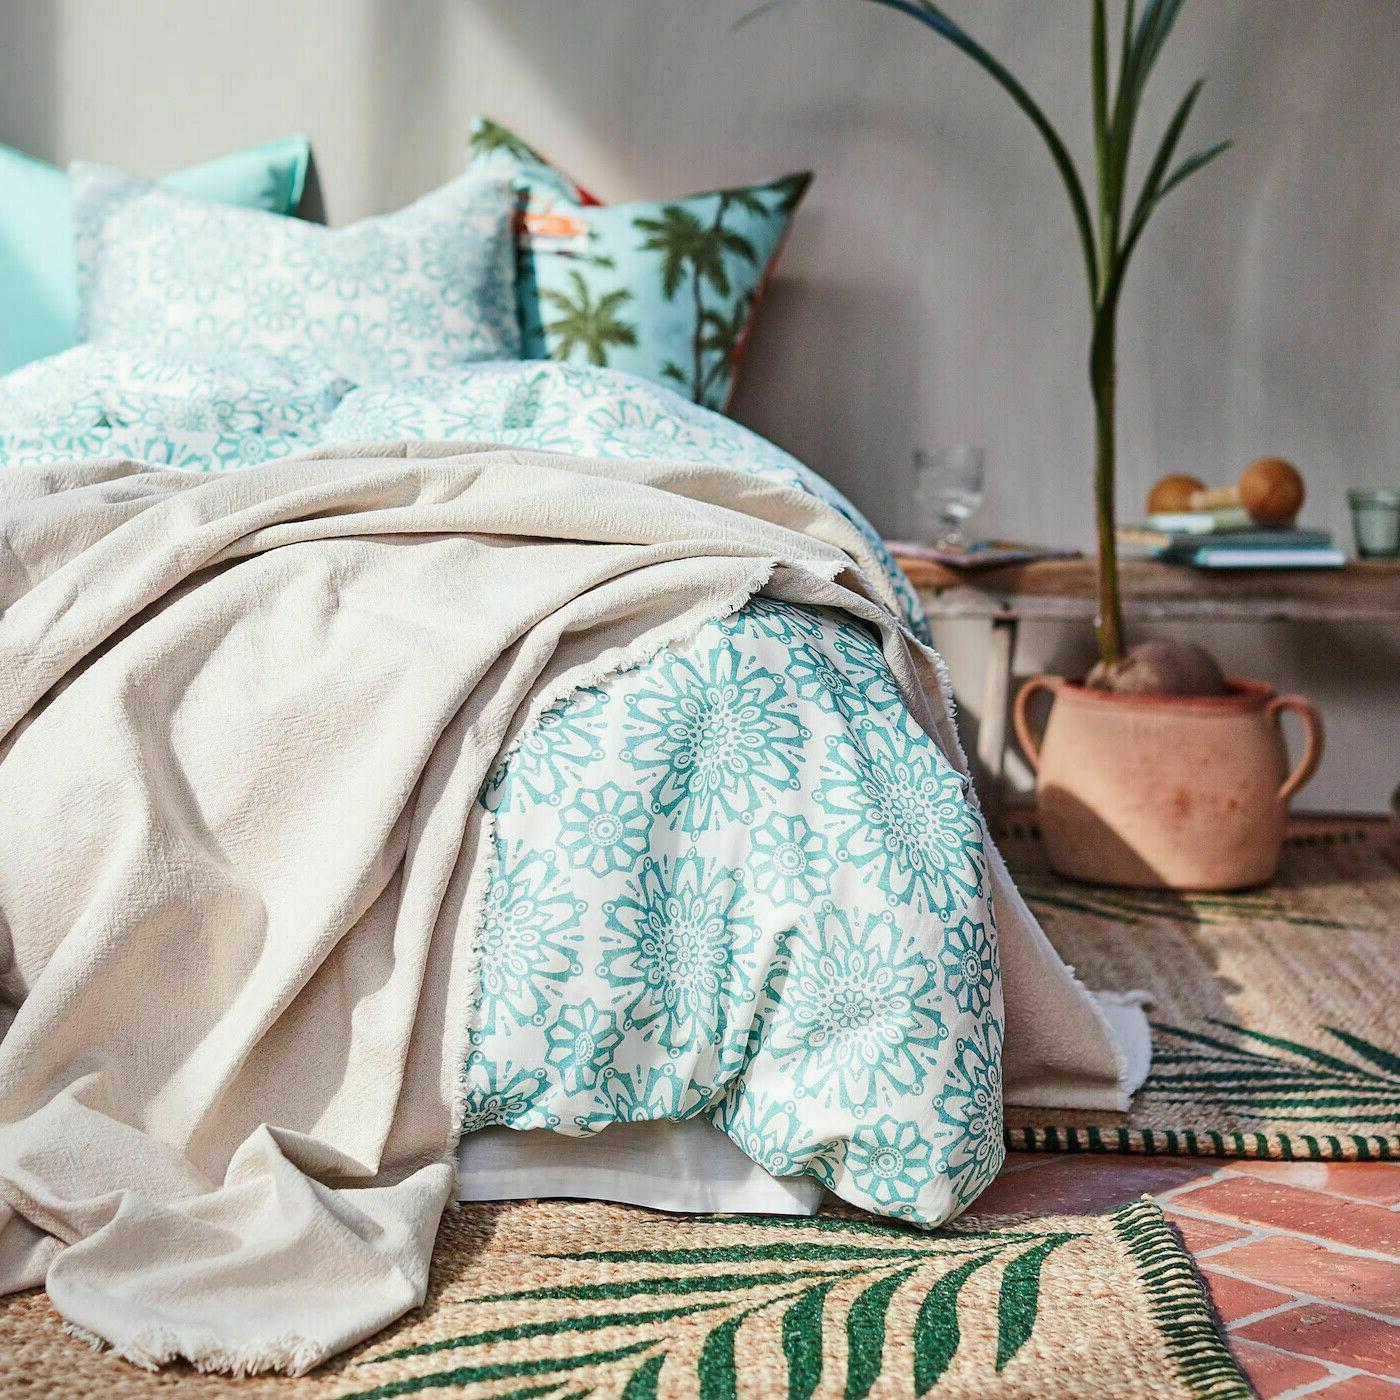 Ikea cover turquoise - NEW